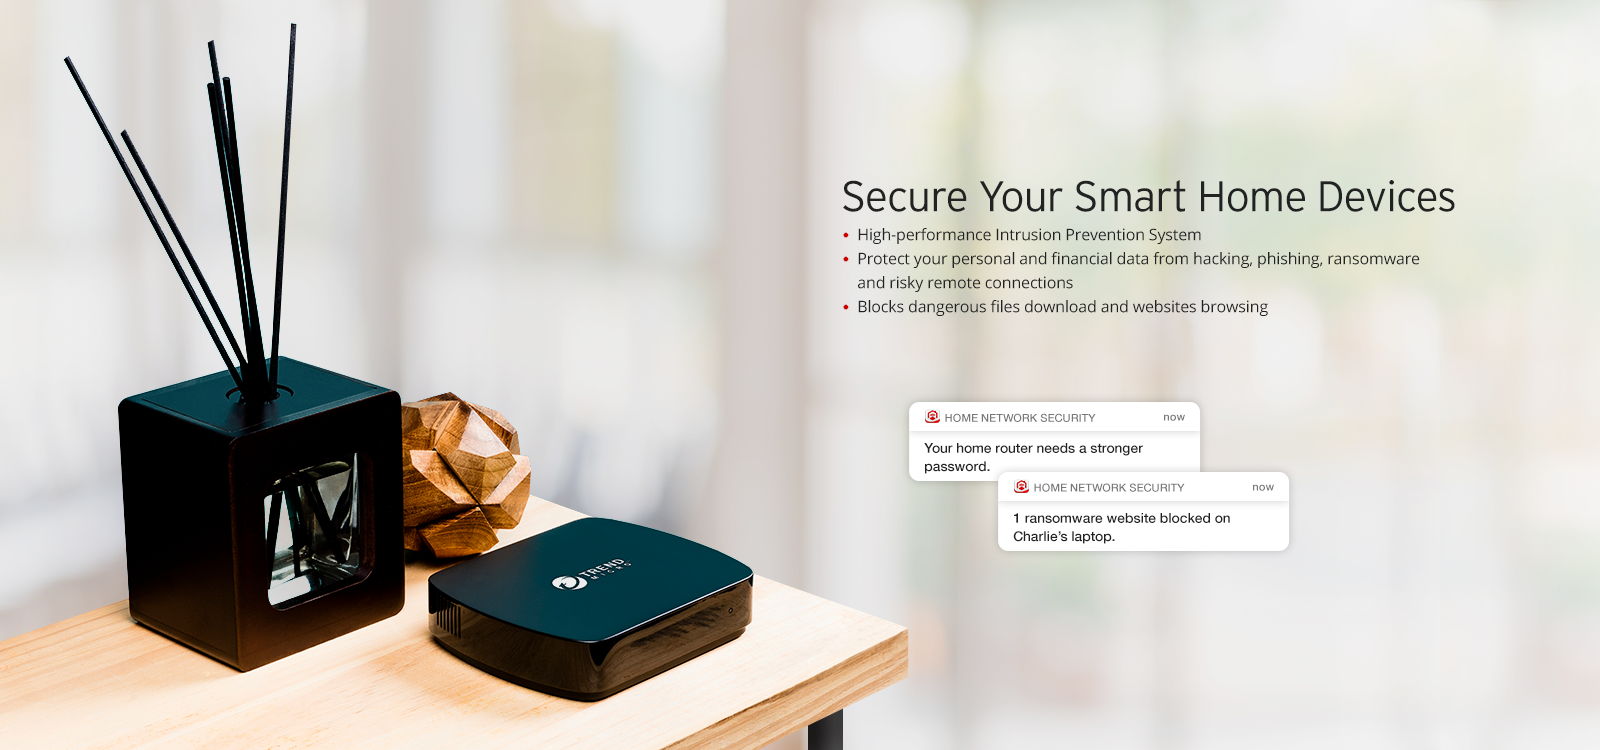 cnet-trend-micro-home-security-cms-article-2-cms-landing-page-clientimage1-00345940.png